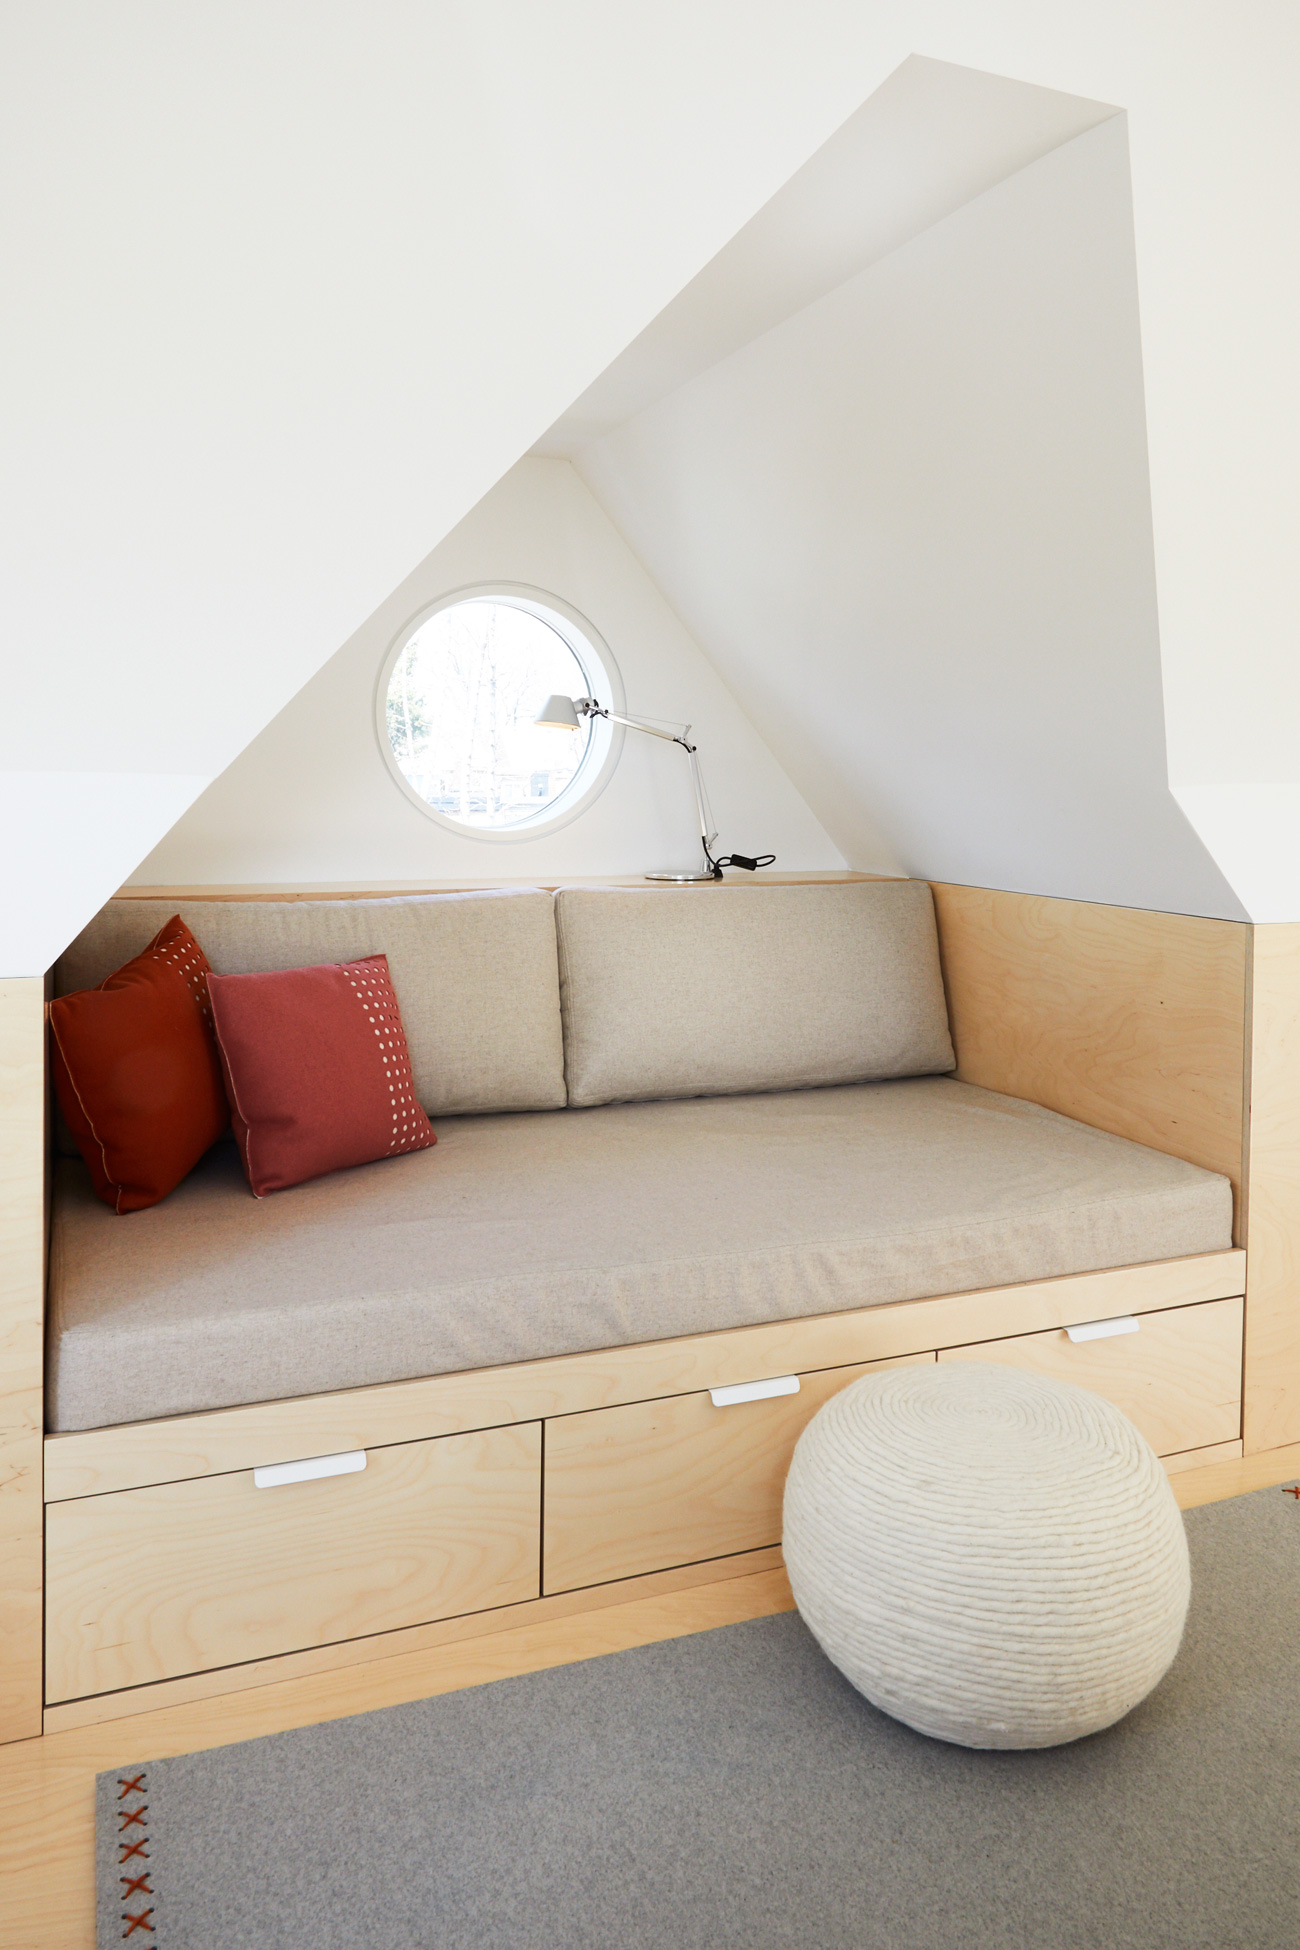 The attic was finished with pale, neutral-toned upholstery and blonde wood reminiscent of a treehouse.